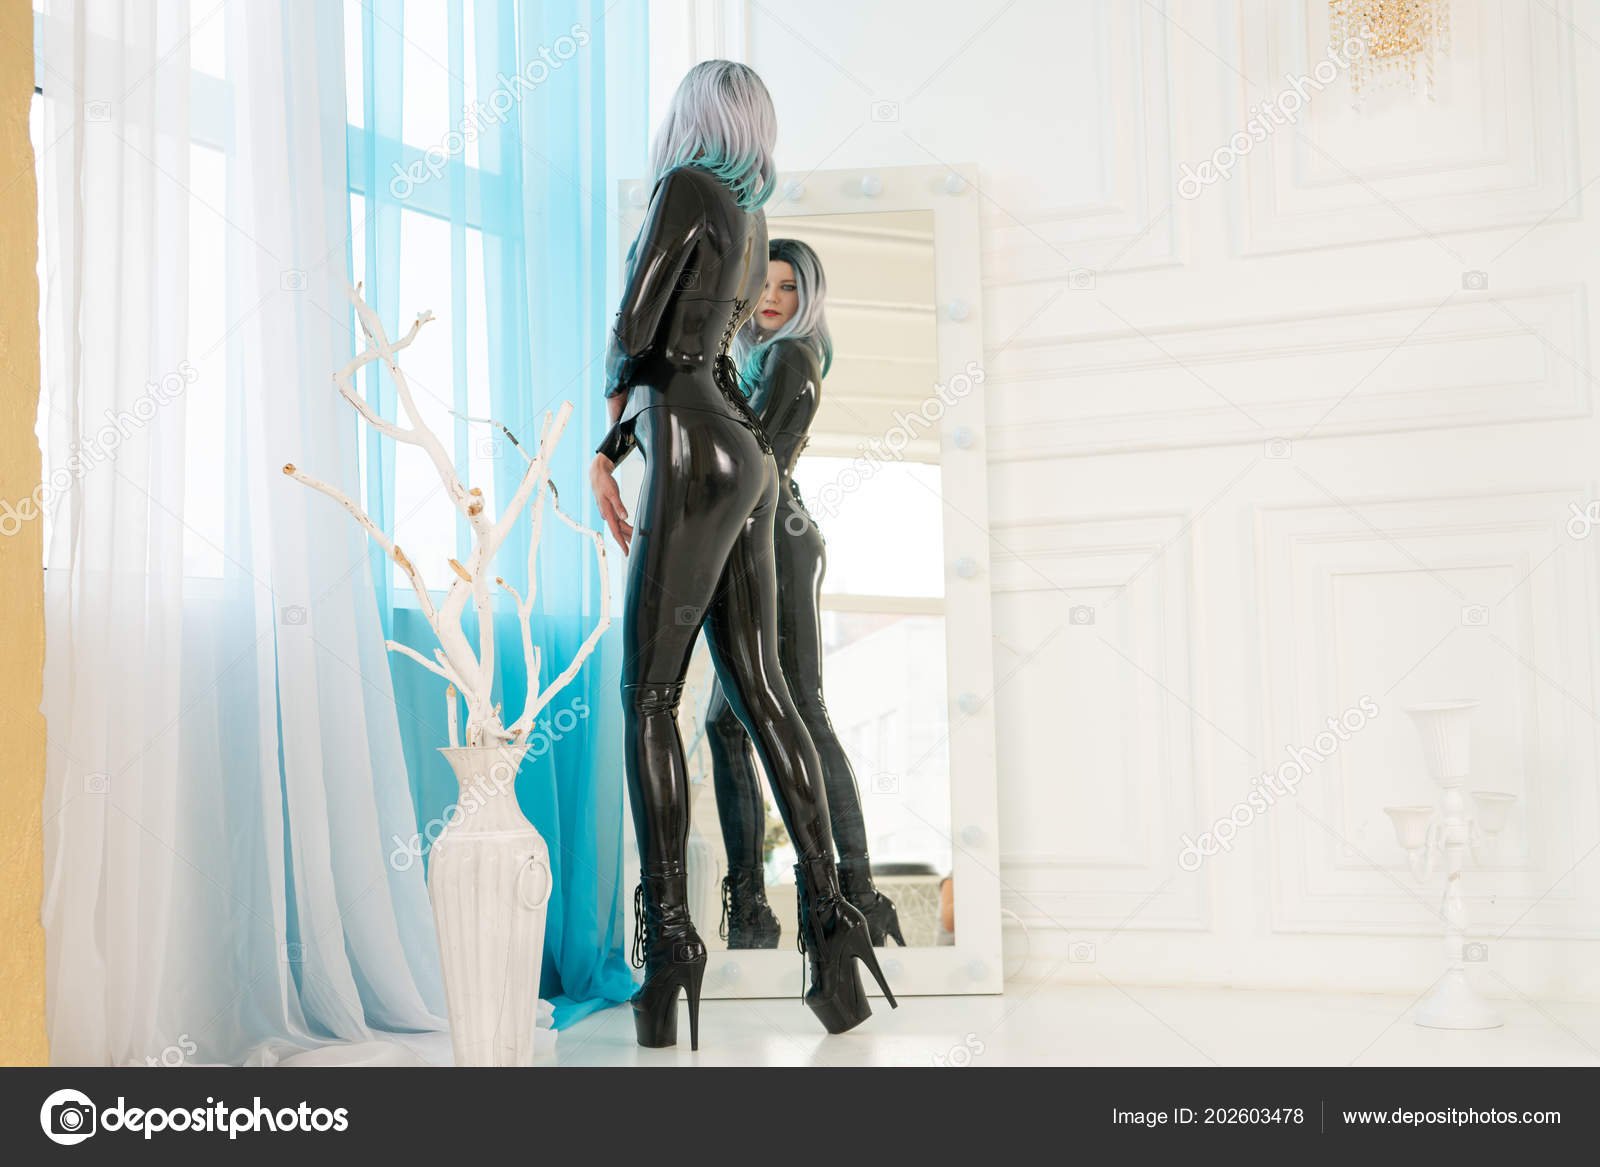 Luxury Fashion Girl Dressed Black Stylish Catwoman Costume Standing Looking u2014 Stock Photo & Luxury Fashion Girl Dressed Black Stylish Catwoman Costume Standing ...